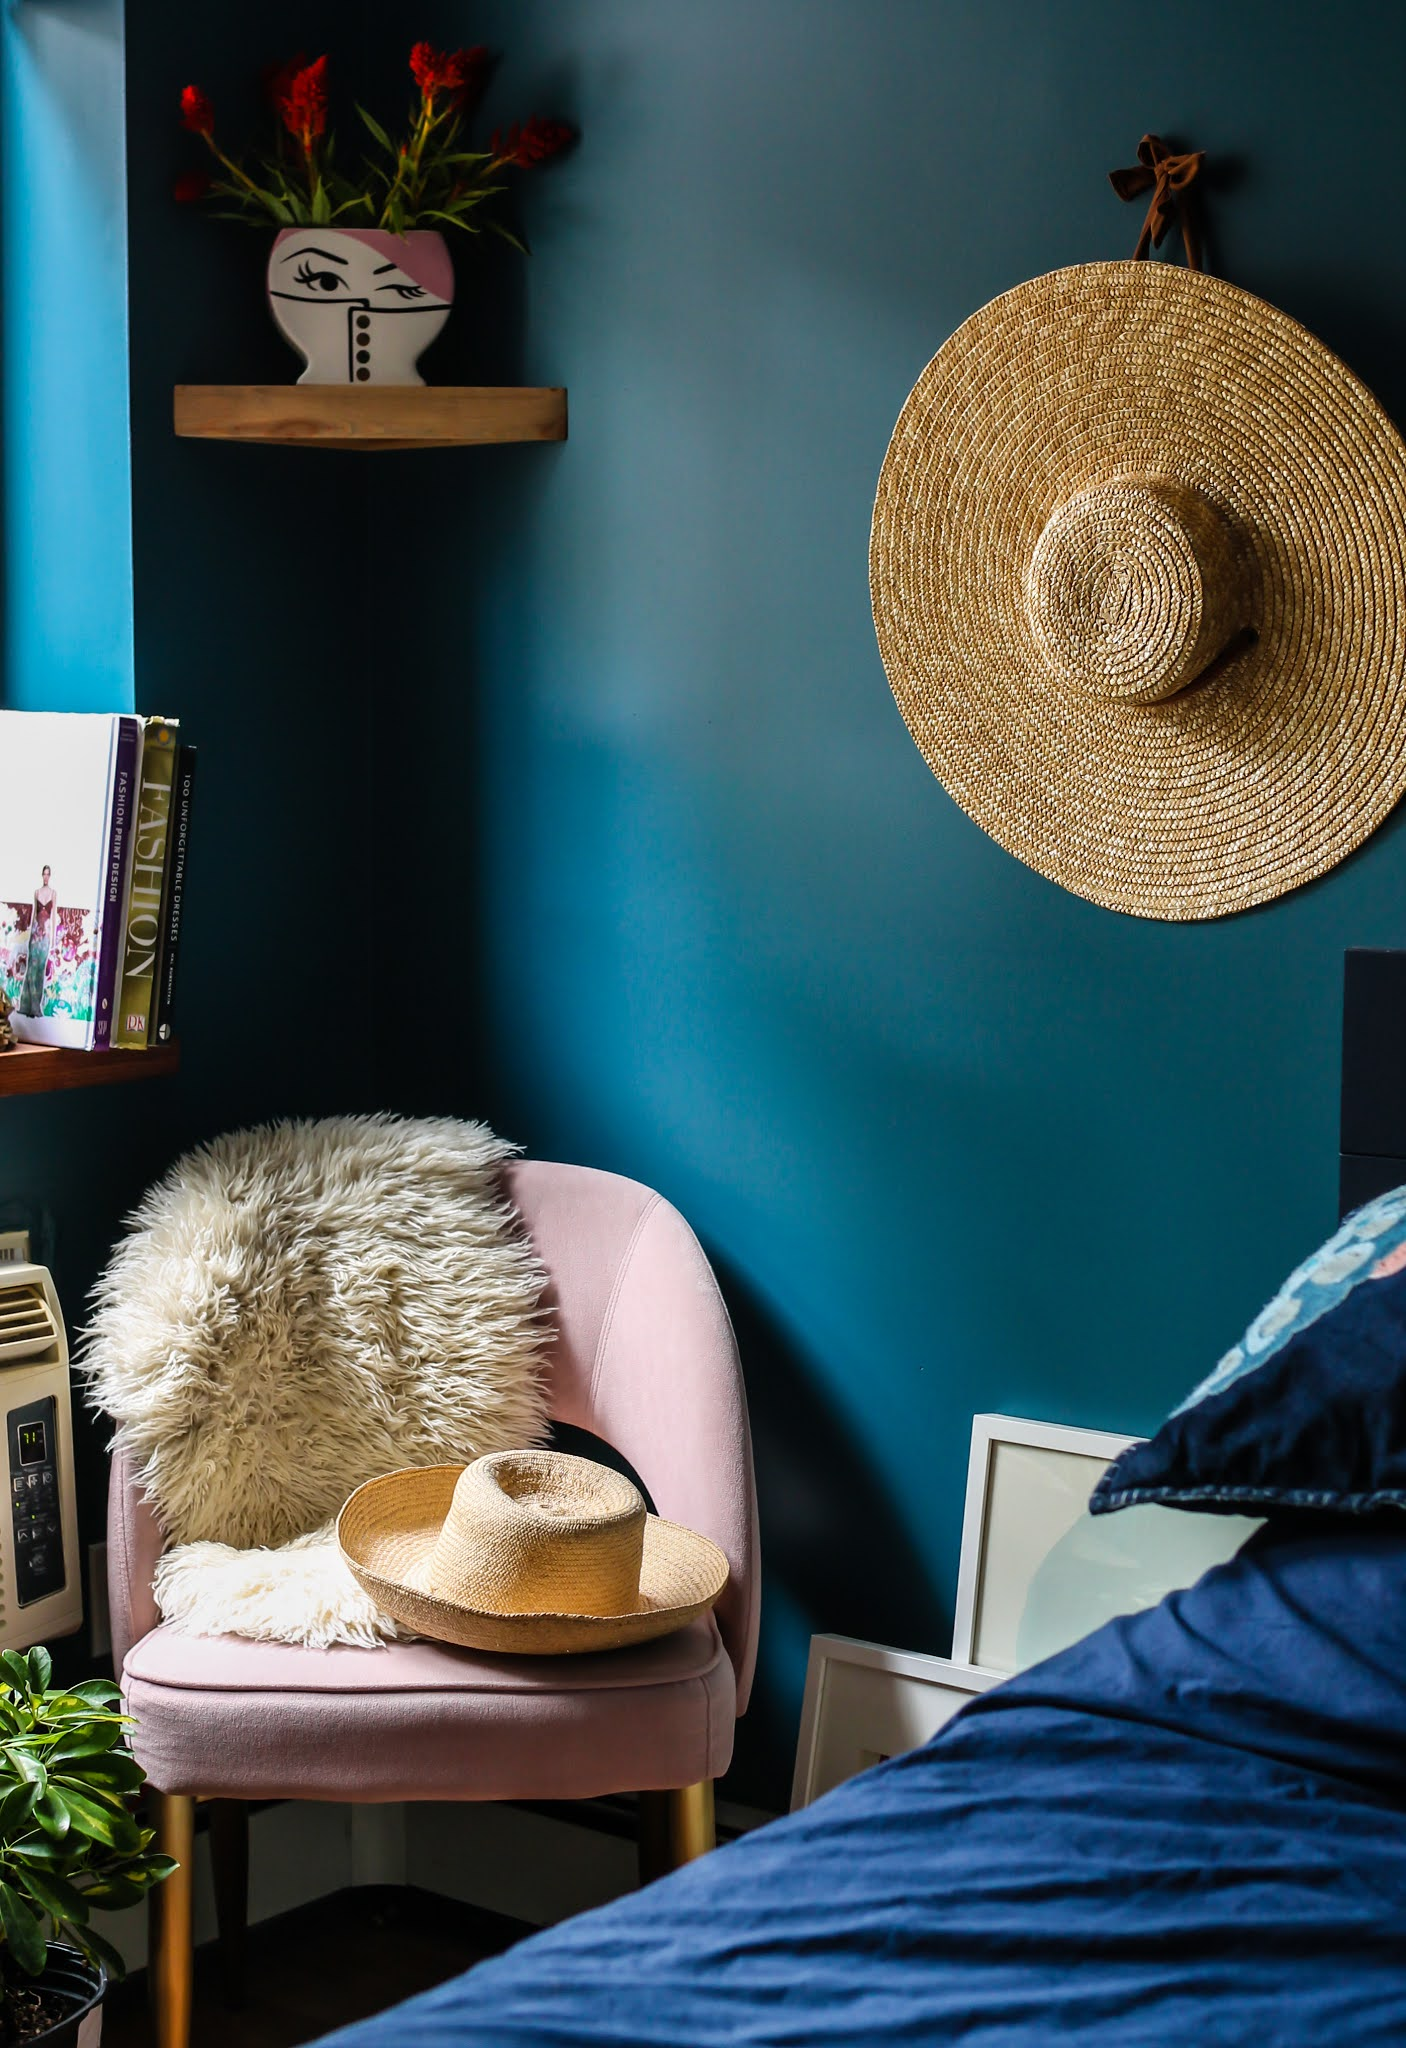 Teal and Pink Decor Ideas // Clare Deep Dive Paint // Clare Goodnight Moon Paint //  Teal Bedroom // Navy Furniture // Green Blue Wall Paint // Deep and Moody Bedroom Inspo // Dark Blue Bedroom Inspo // Blue Bedroom Ideas // Teal Bedroom Ideas // Jeweltone Bedrooms // Jeweltone Bedroom Inspiration // Jeweltone Bedroom Inspo // Boho Bedroom Ideas // Plant Filled Bedroom // How To Paint Ikea Furniture // Paint Your Ikea Brimnes Wardrobe // Ikea Brimnes Hack // Easy Ikea Hacks // Ikea Wardrobe Hack // Pink and Teal Decor Ideas // Pink and Teal Bedroom // Teal and Pink Home Decor